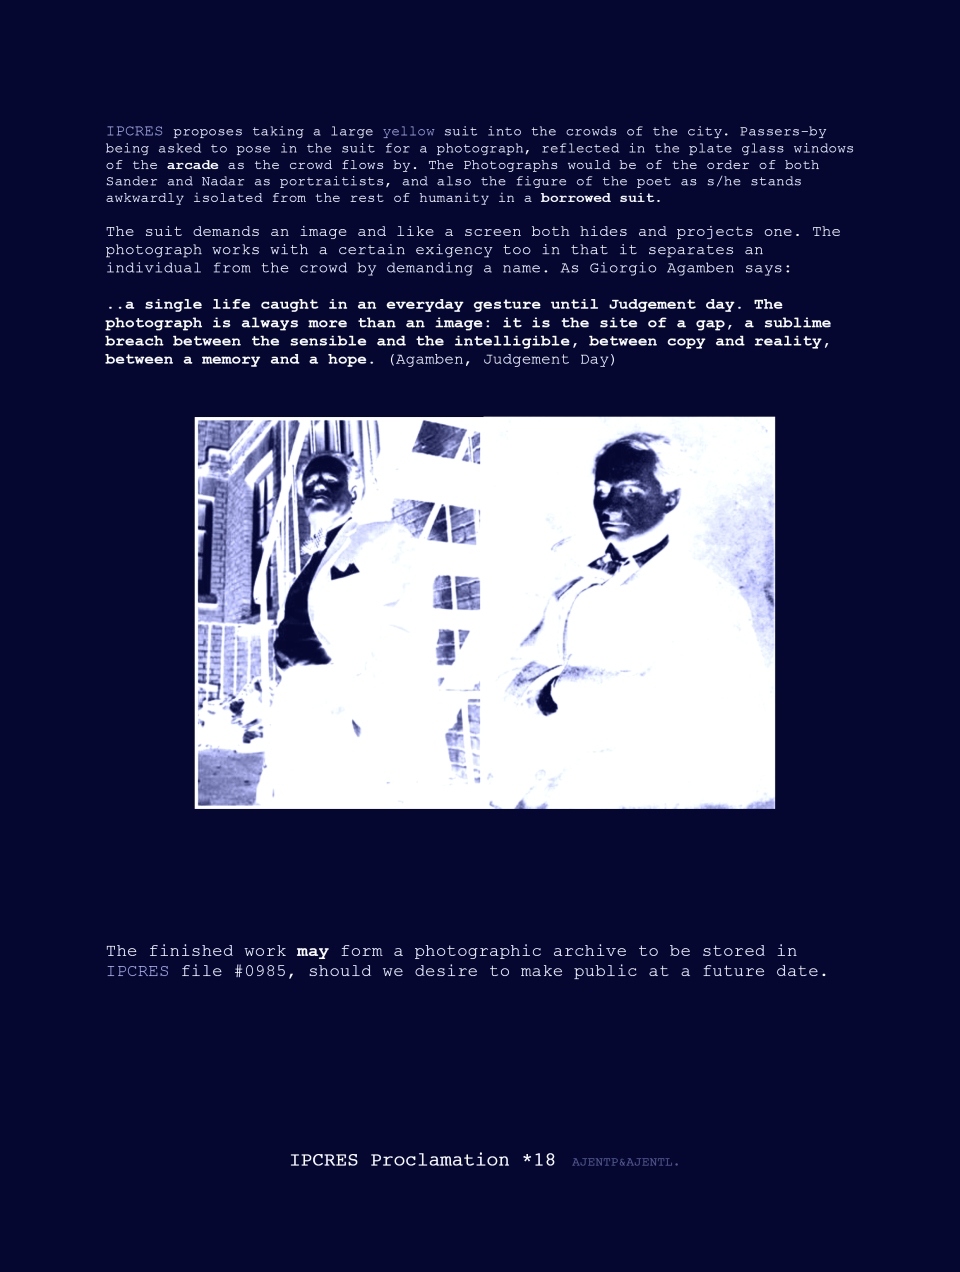 mission briefing suit and photo page 2.jpg